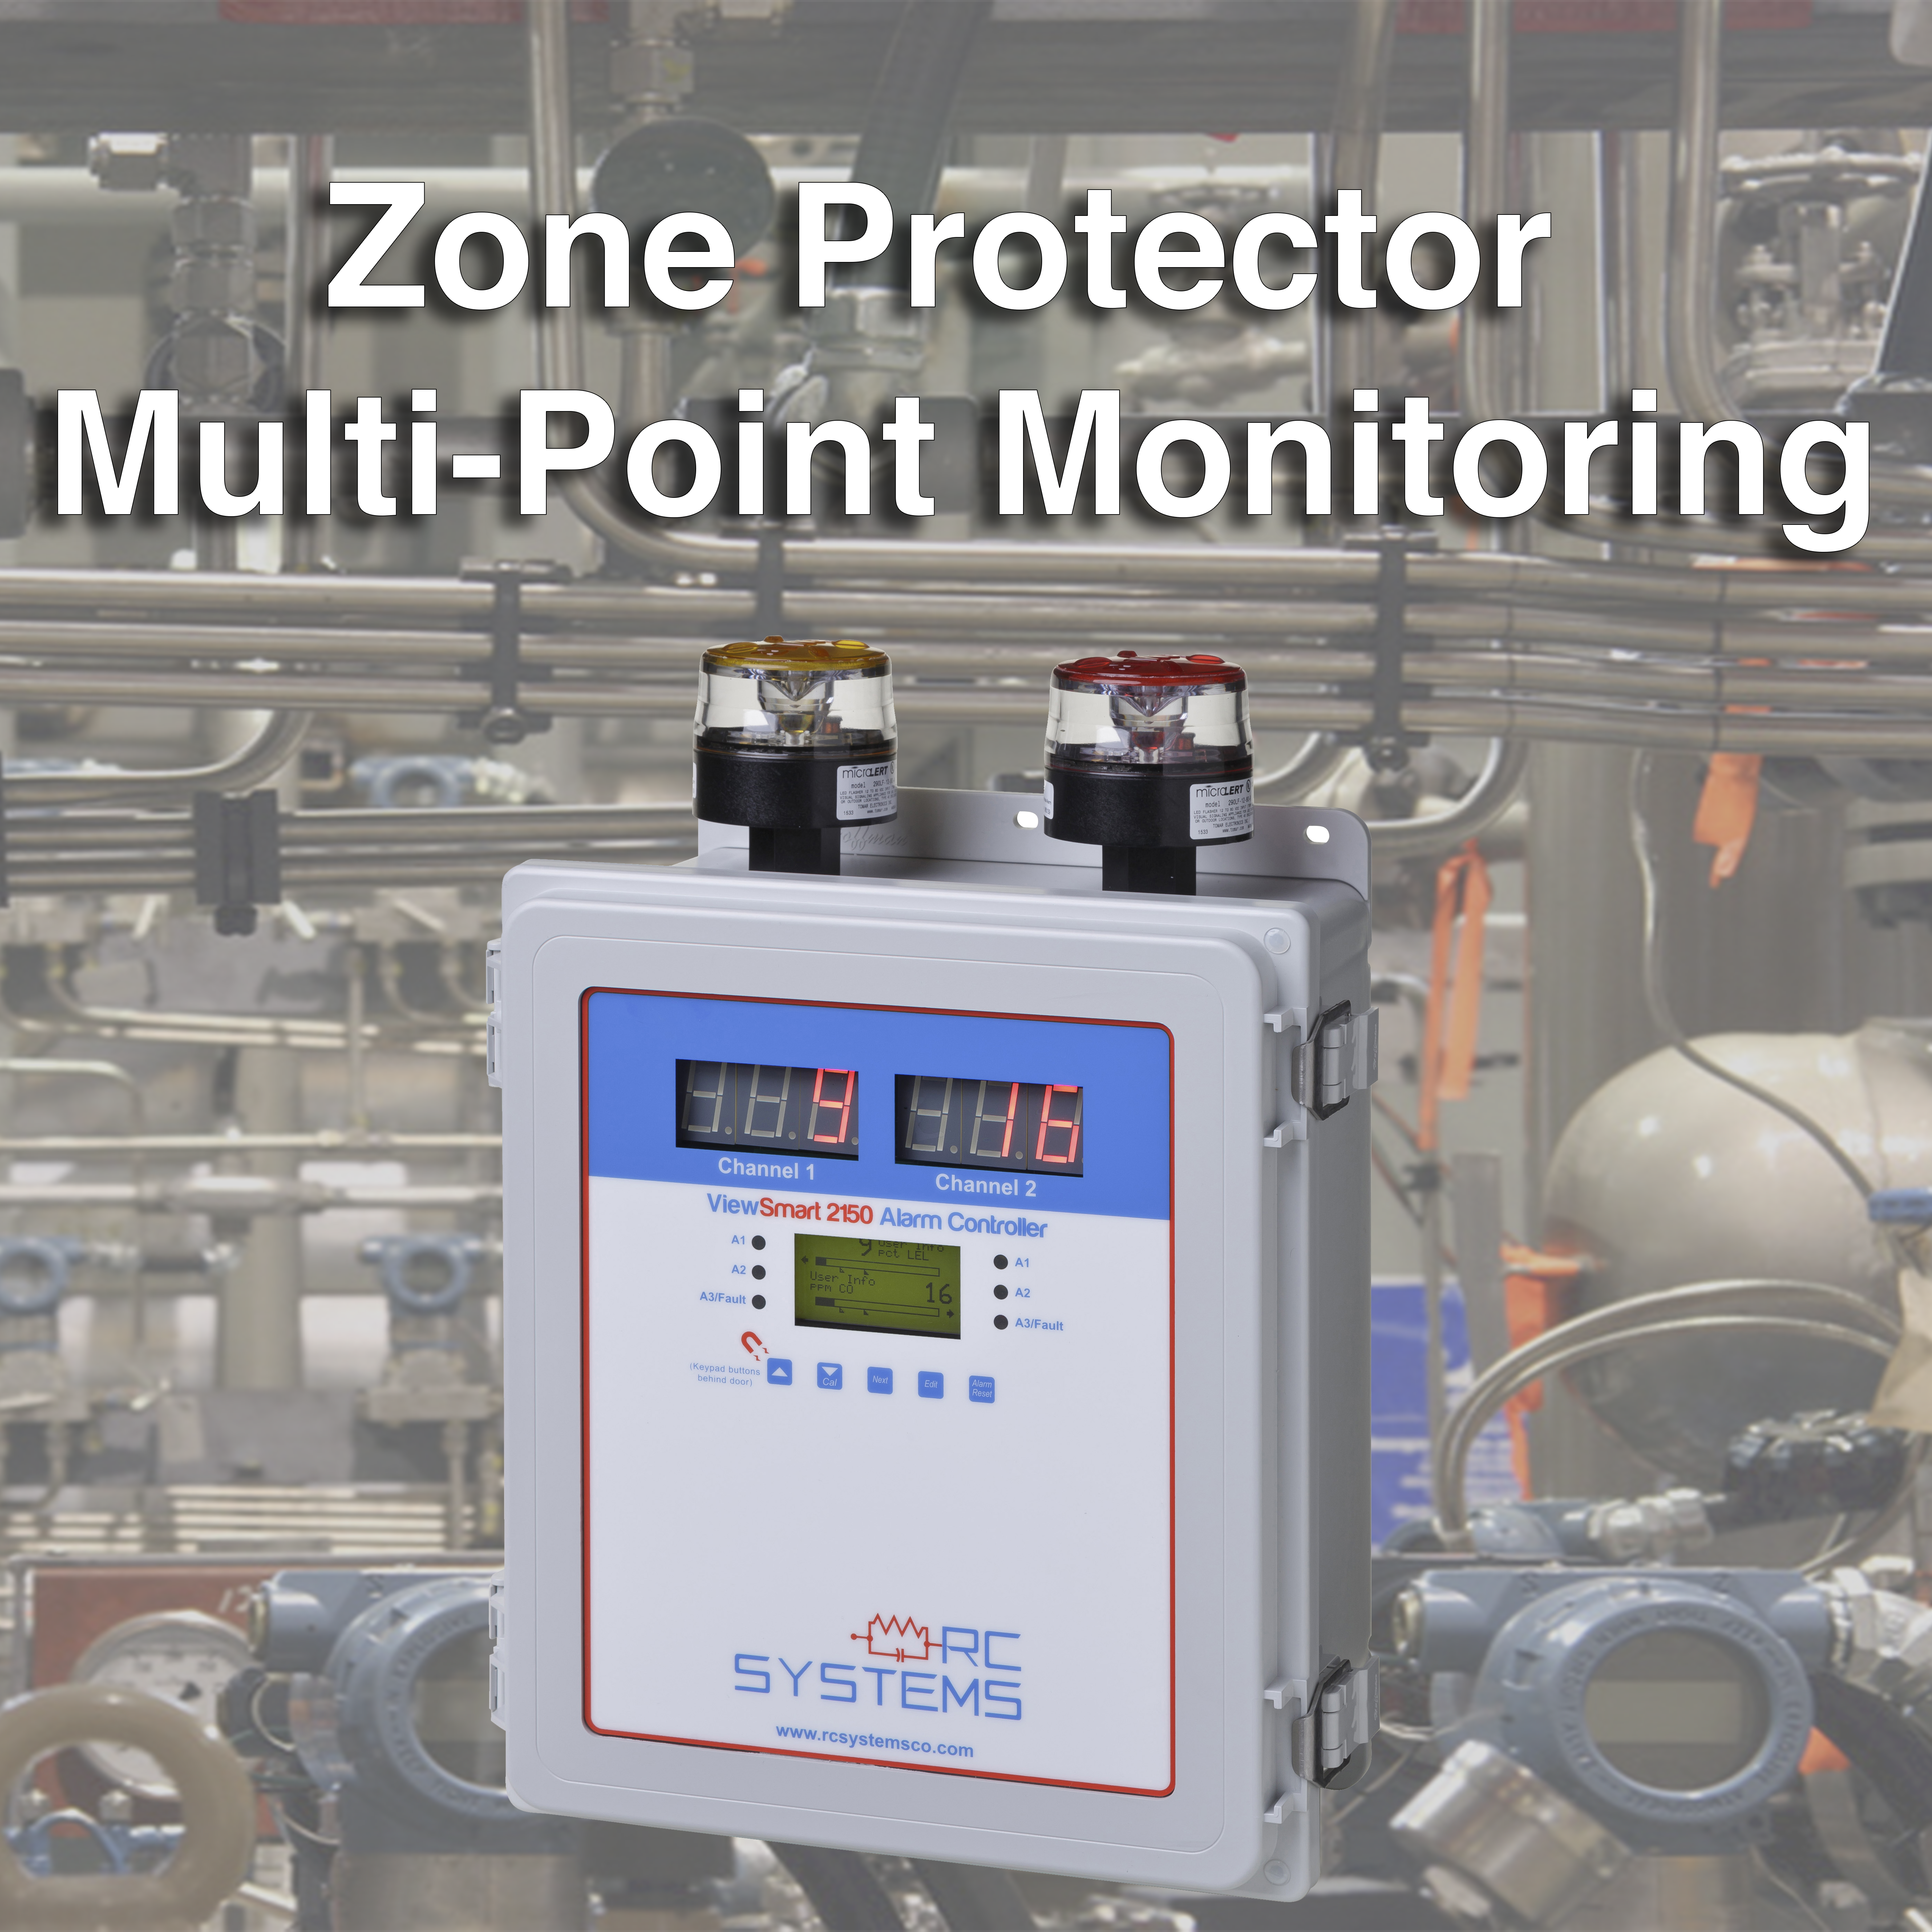 Zone Protector Multi-Point Monitoring